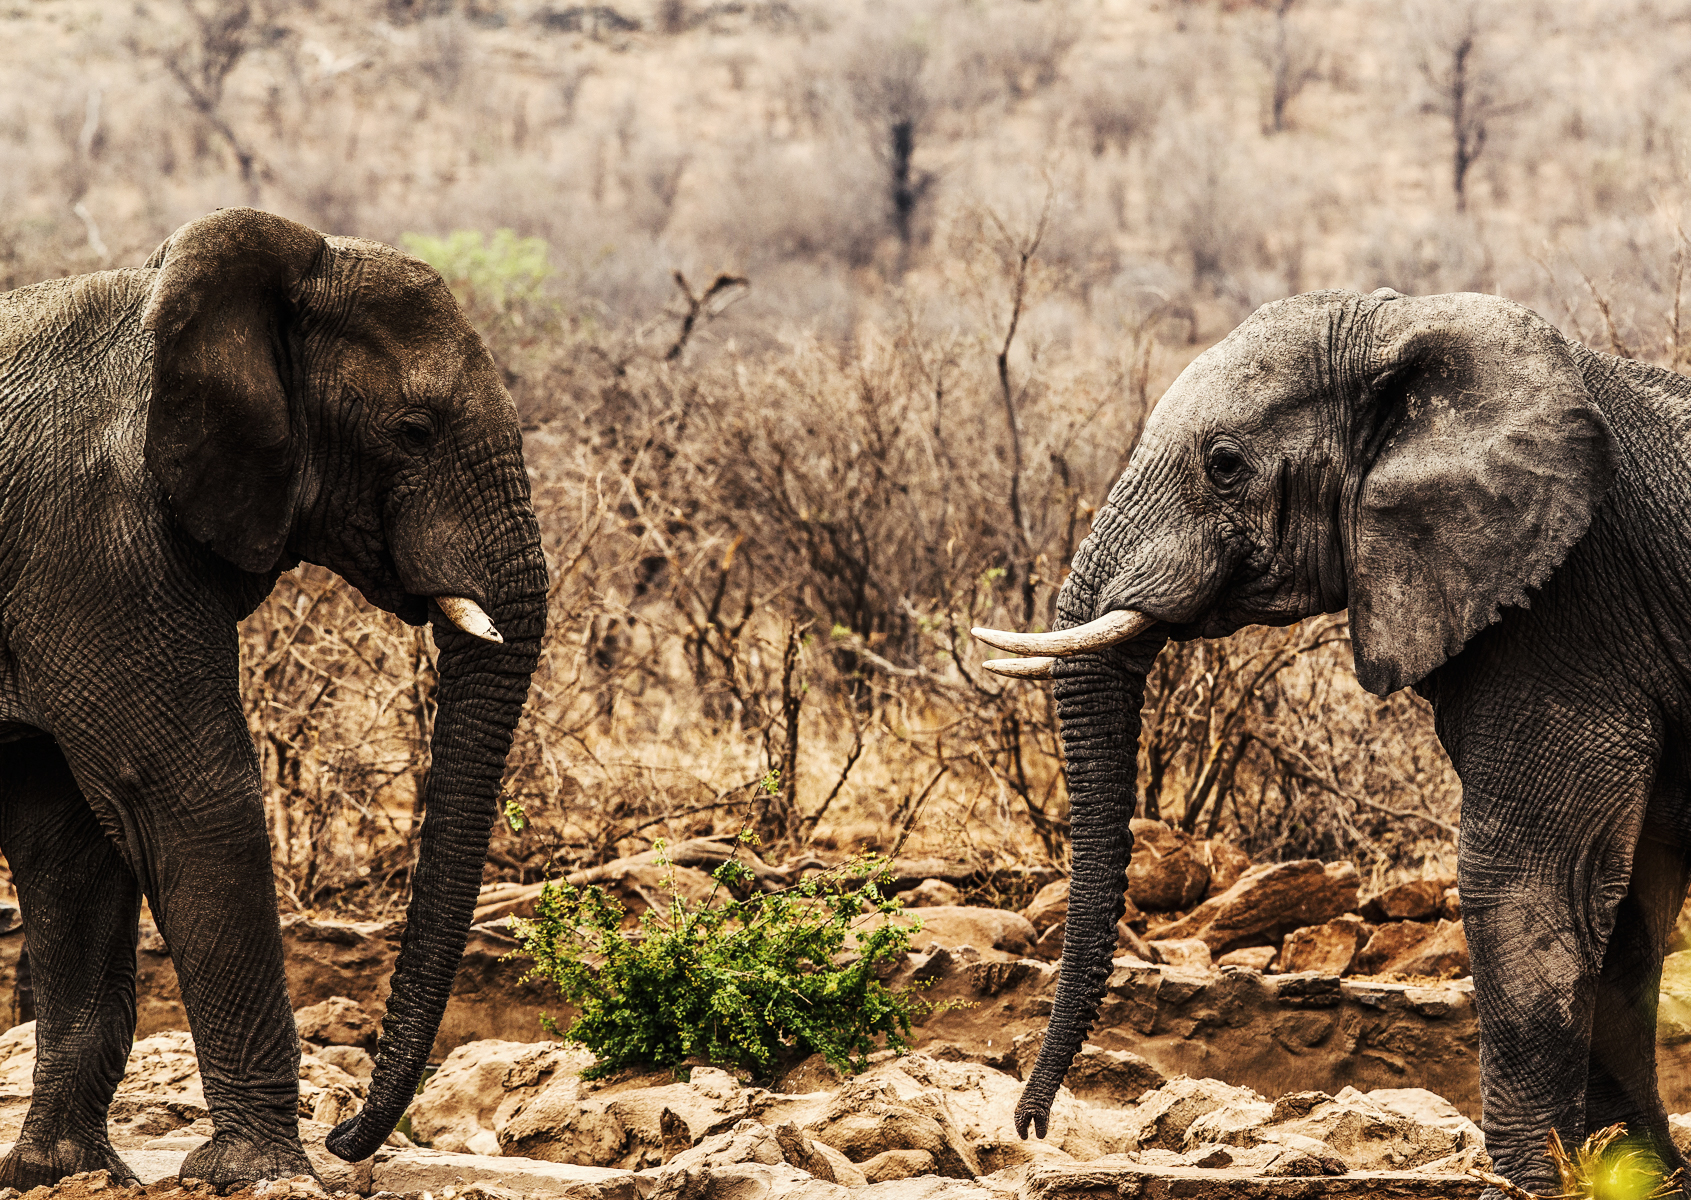 Two male Elephants clamming territory at the local watering hole at Rhulani.